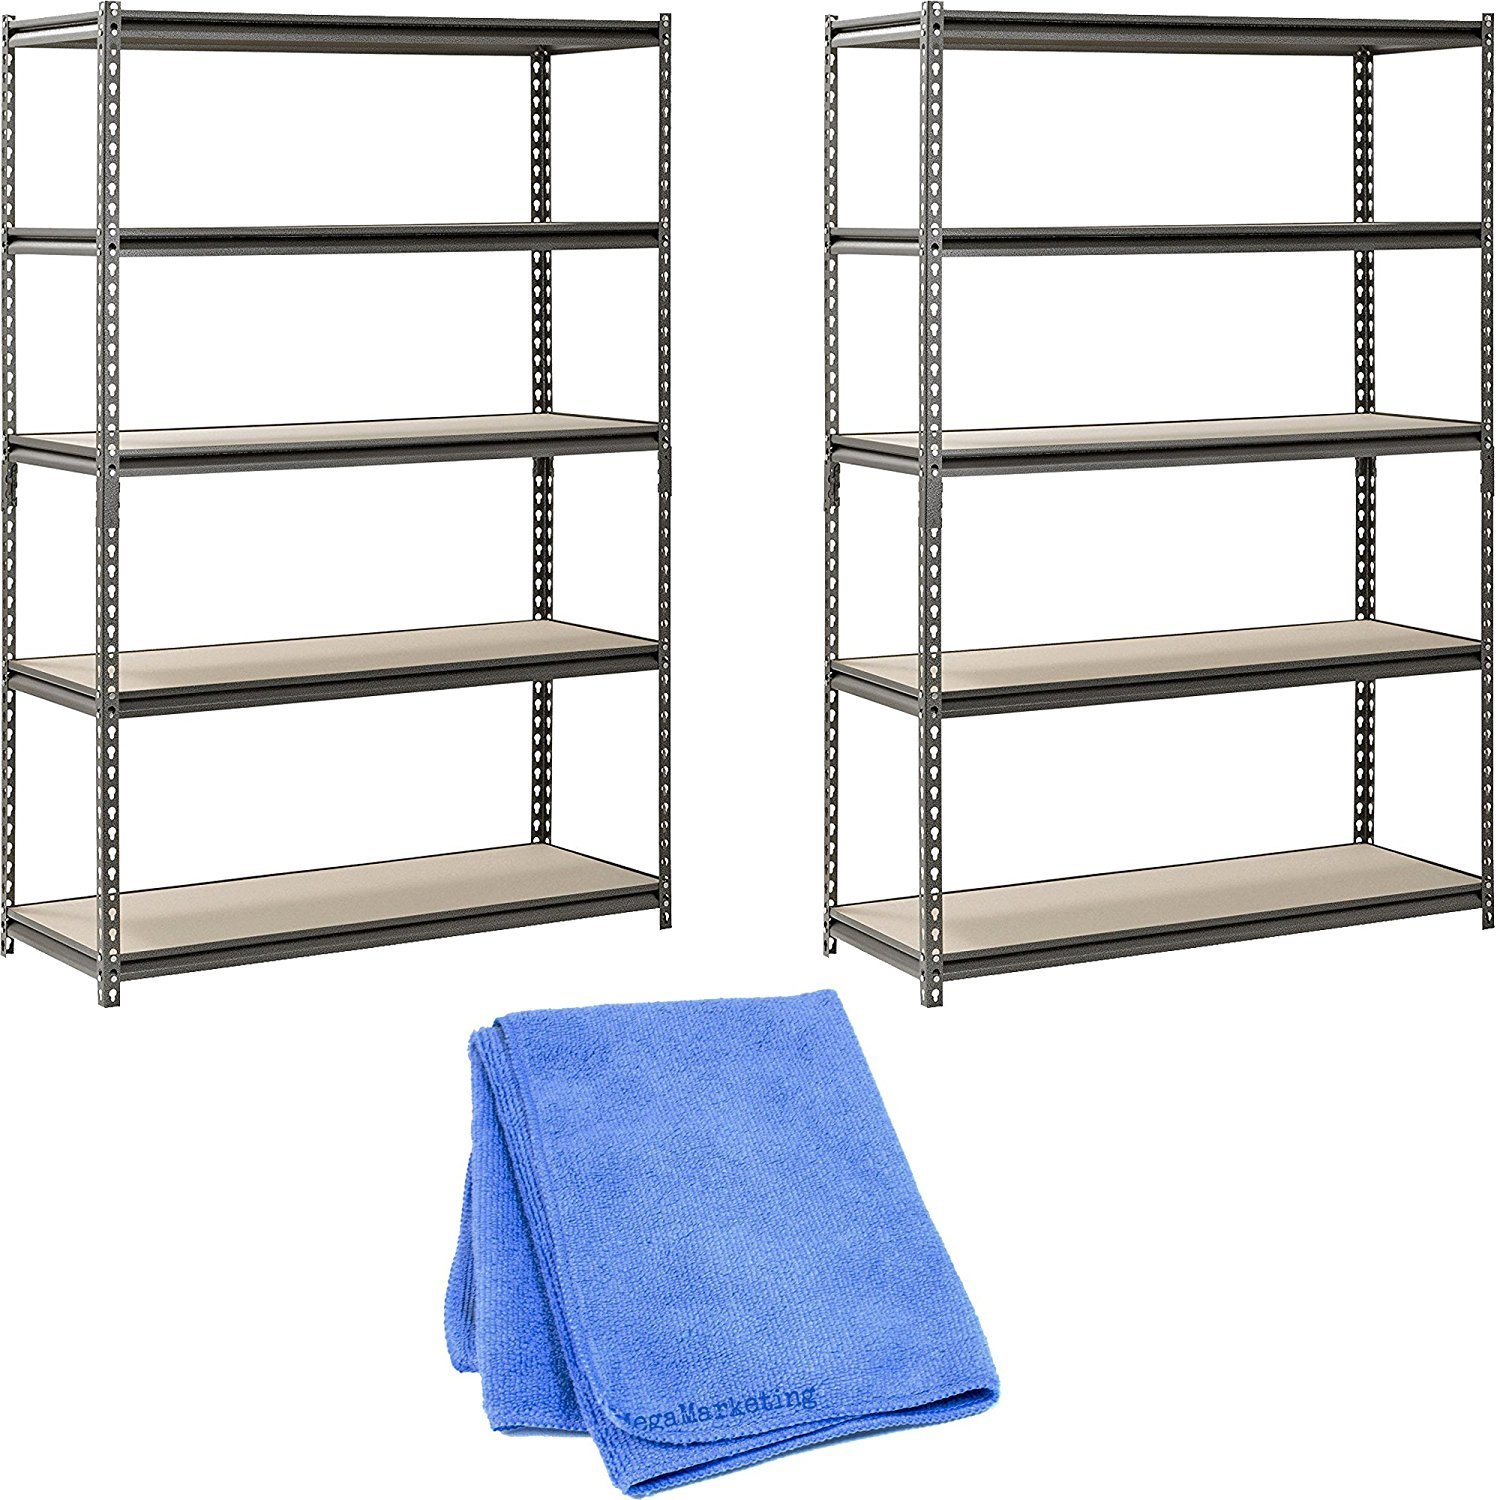 Muscle Rack UR481872PB5P-SV Silver Vein Steel Storage Rack, 5 Adjustable Shelves, 4000 lb. Capacity, 72'' Height x 48'' Width x 18'' Depth (2-Pack) with Towel Cleaner